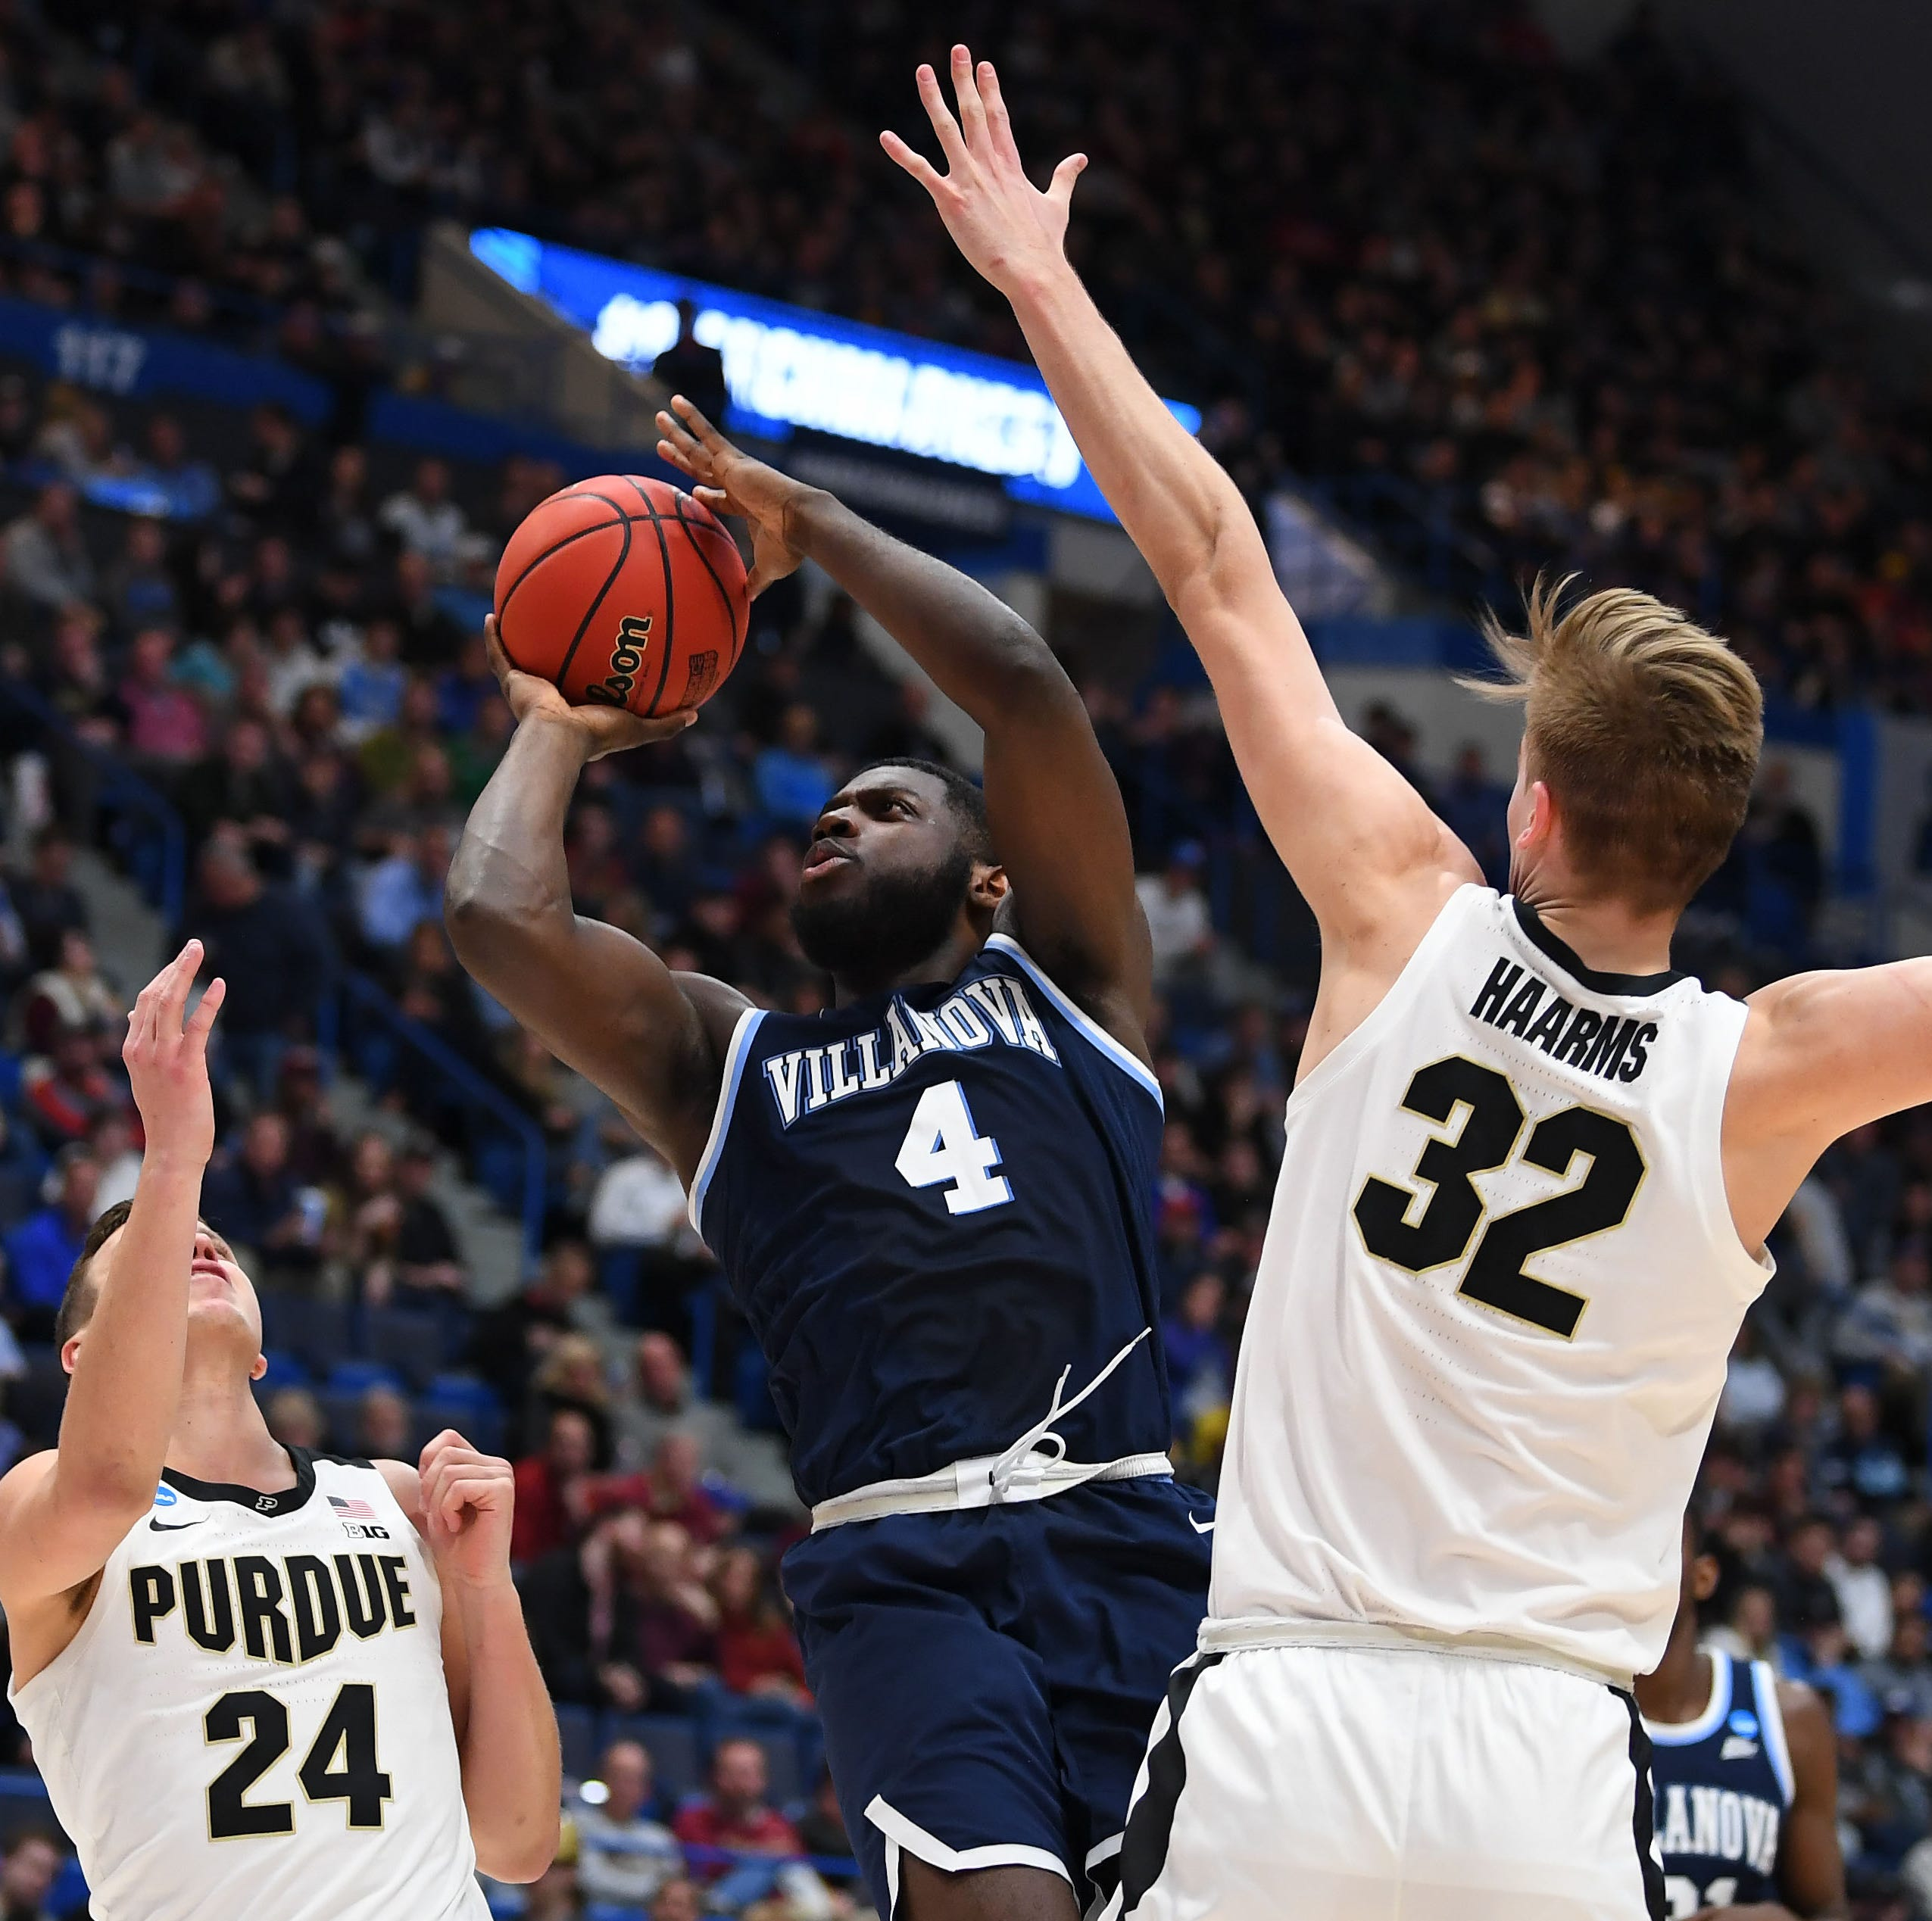 Purdue basketball unleashed its defensive improvement in NCAA tournament's opening rounds